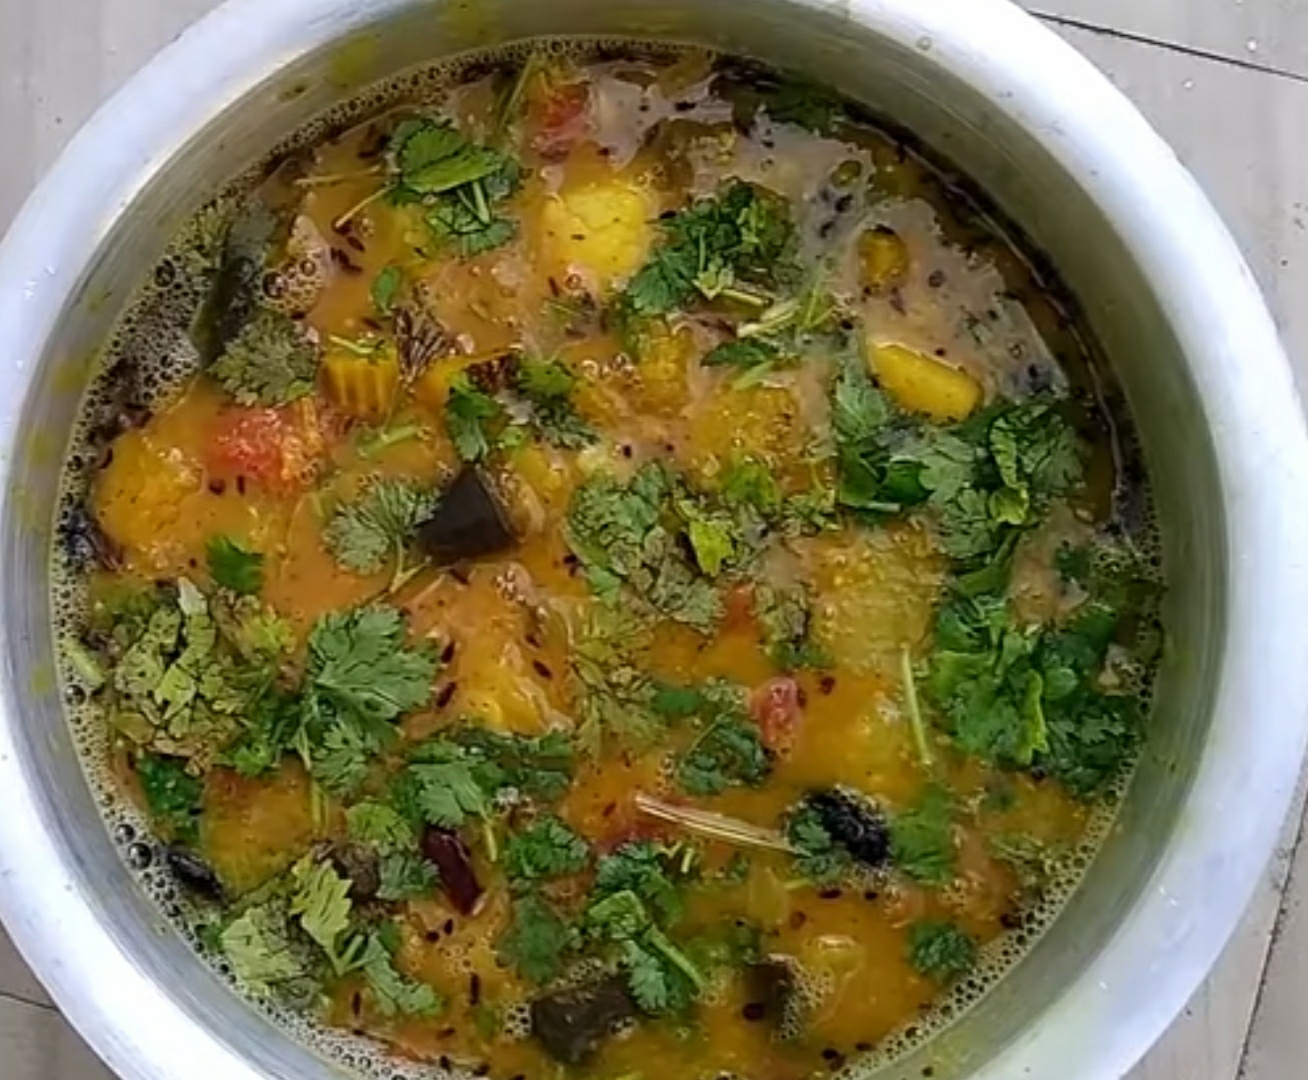 Oriya Particular Dalma Recipe-how to make Oriya Particular Dalma Recipe